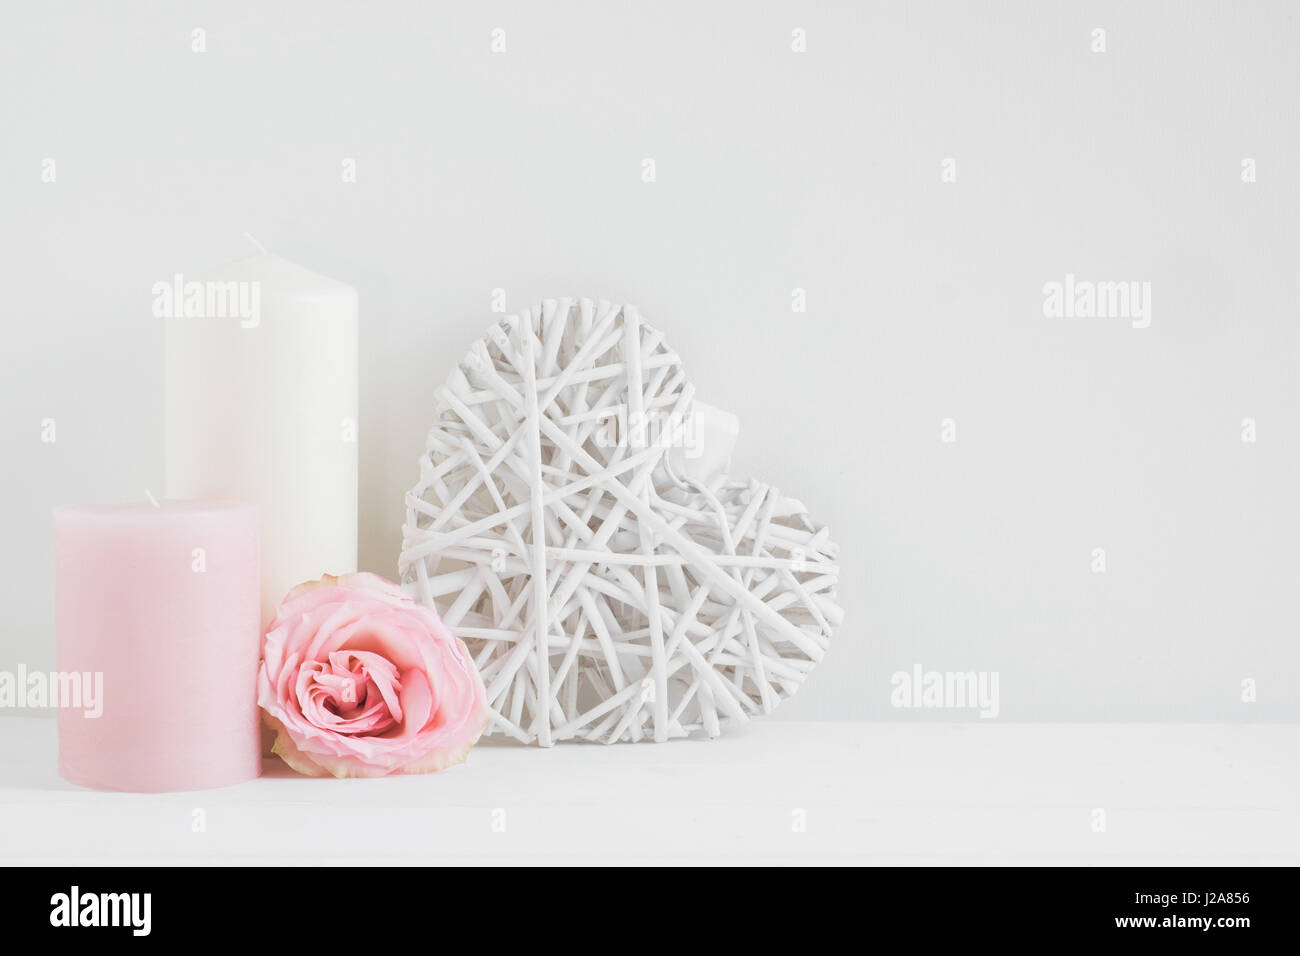 Floral styled stock photography with white copy space for your own business message, promotion, headline, great - Stock Image